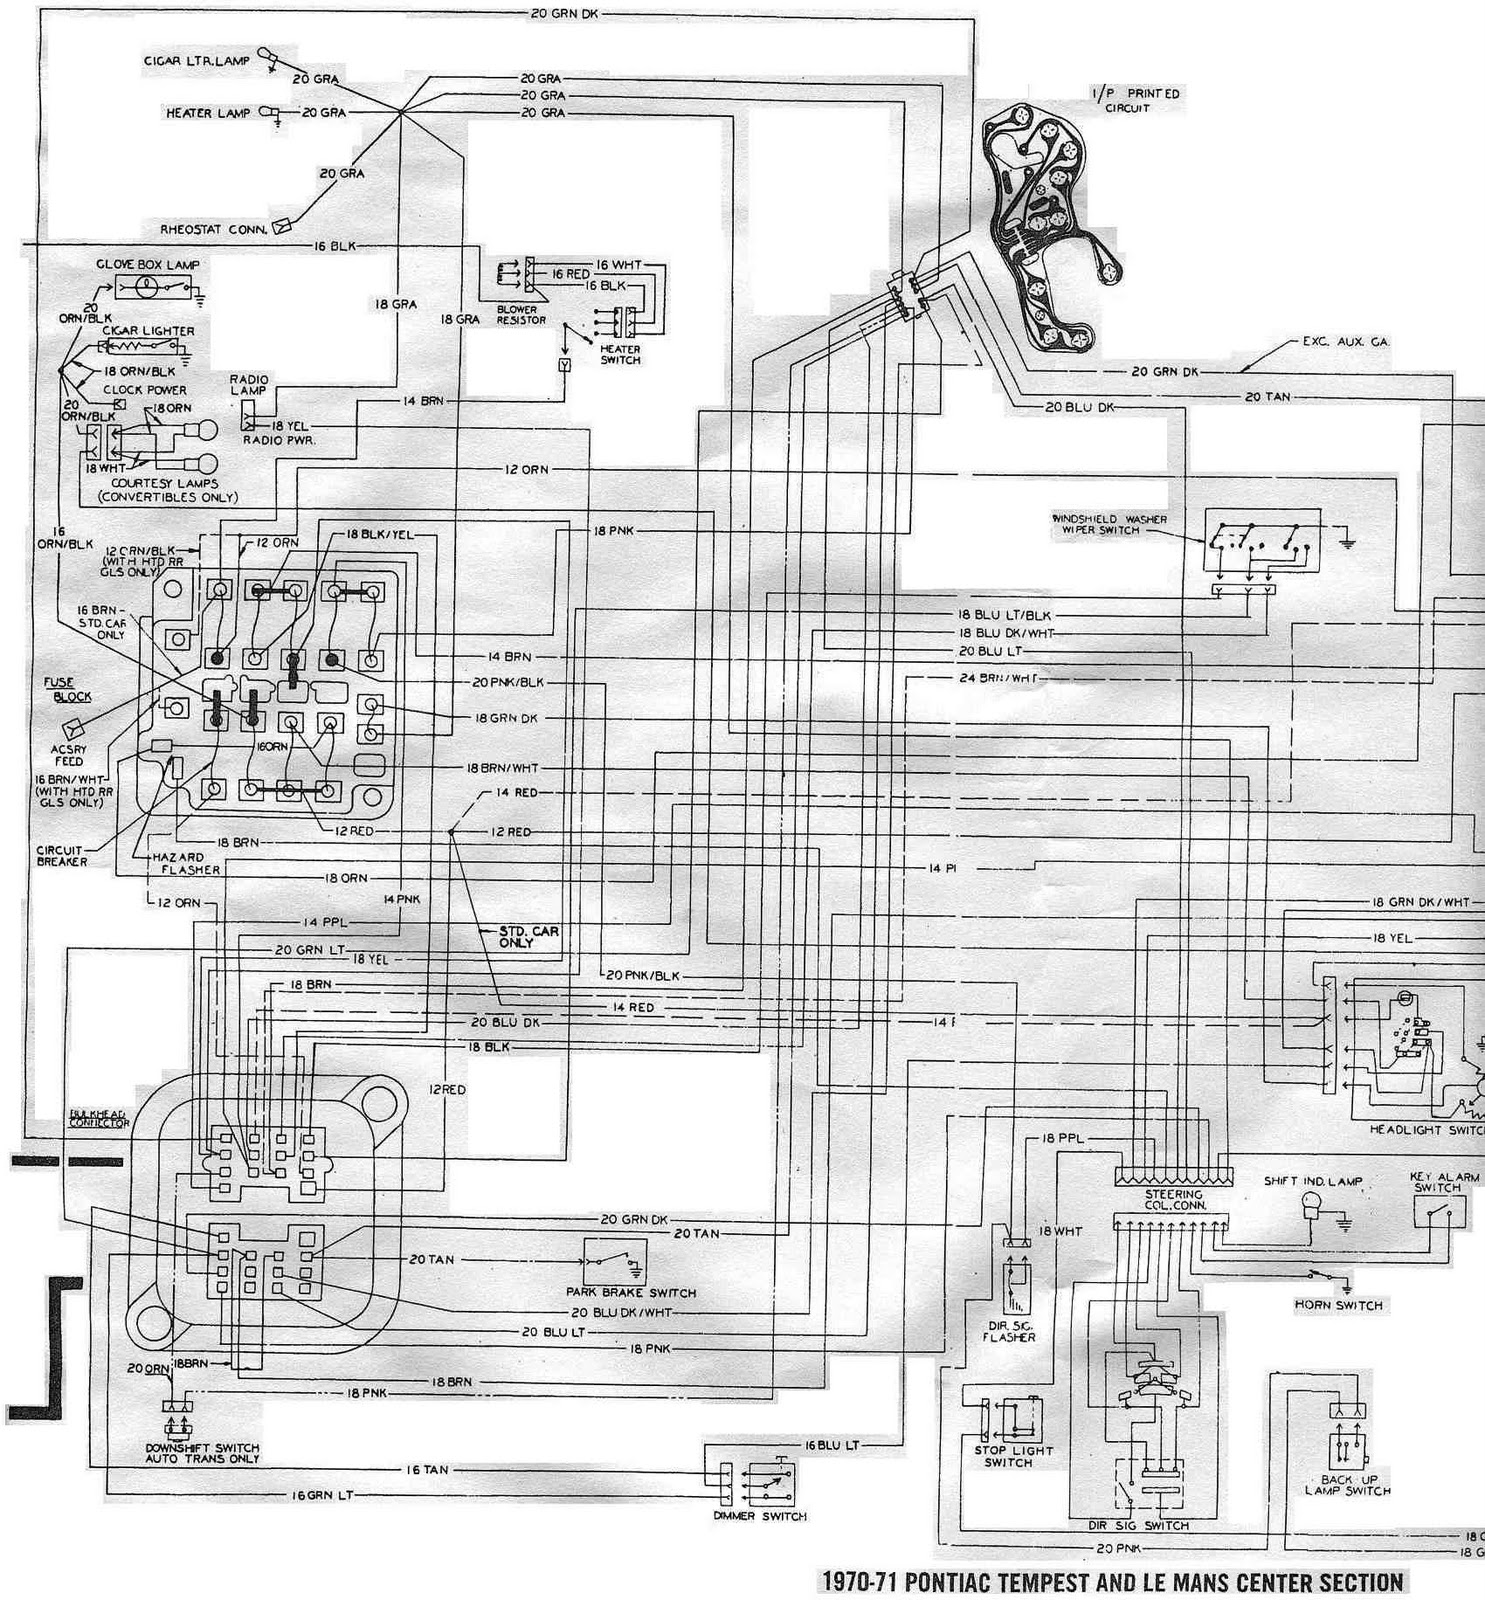 1967 Gto Tach Wiring Diagram Expert Schematics 1968 Mustang 65 Trusted 67